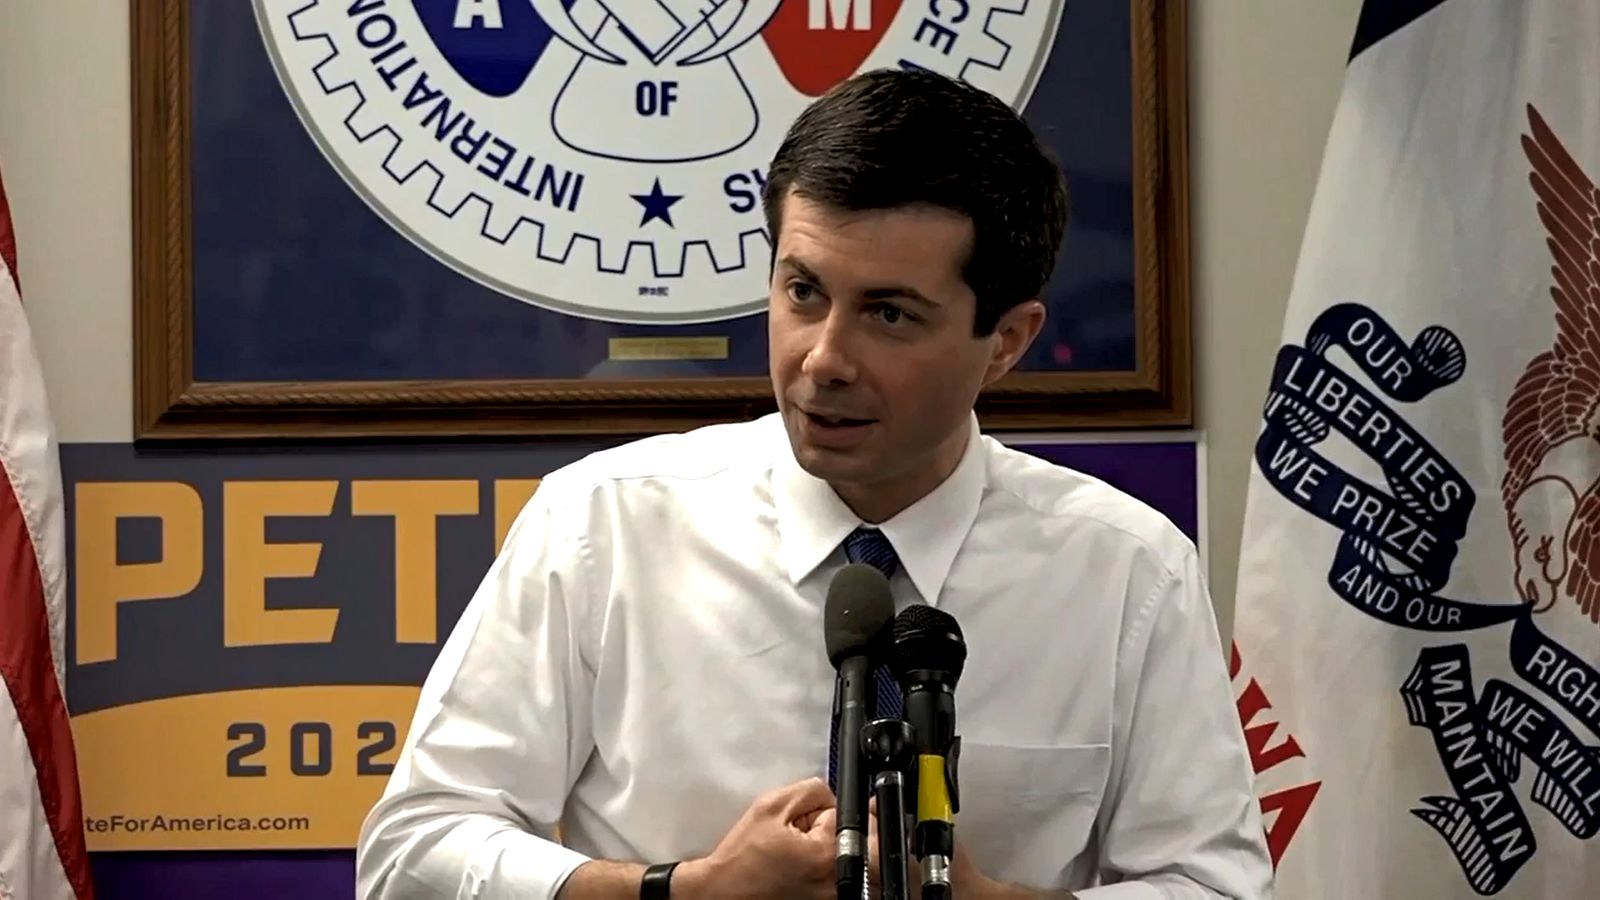 Democratic candidate and South bend, Ind. Mayor Pete Buttigieg campaigns in Des Moines, Iowa. (Image: WSBT)